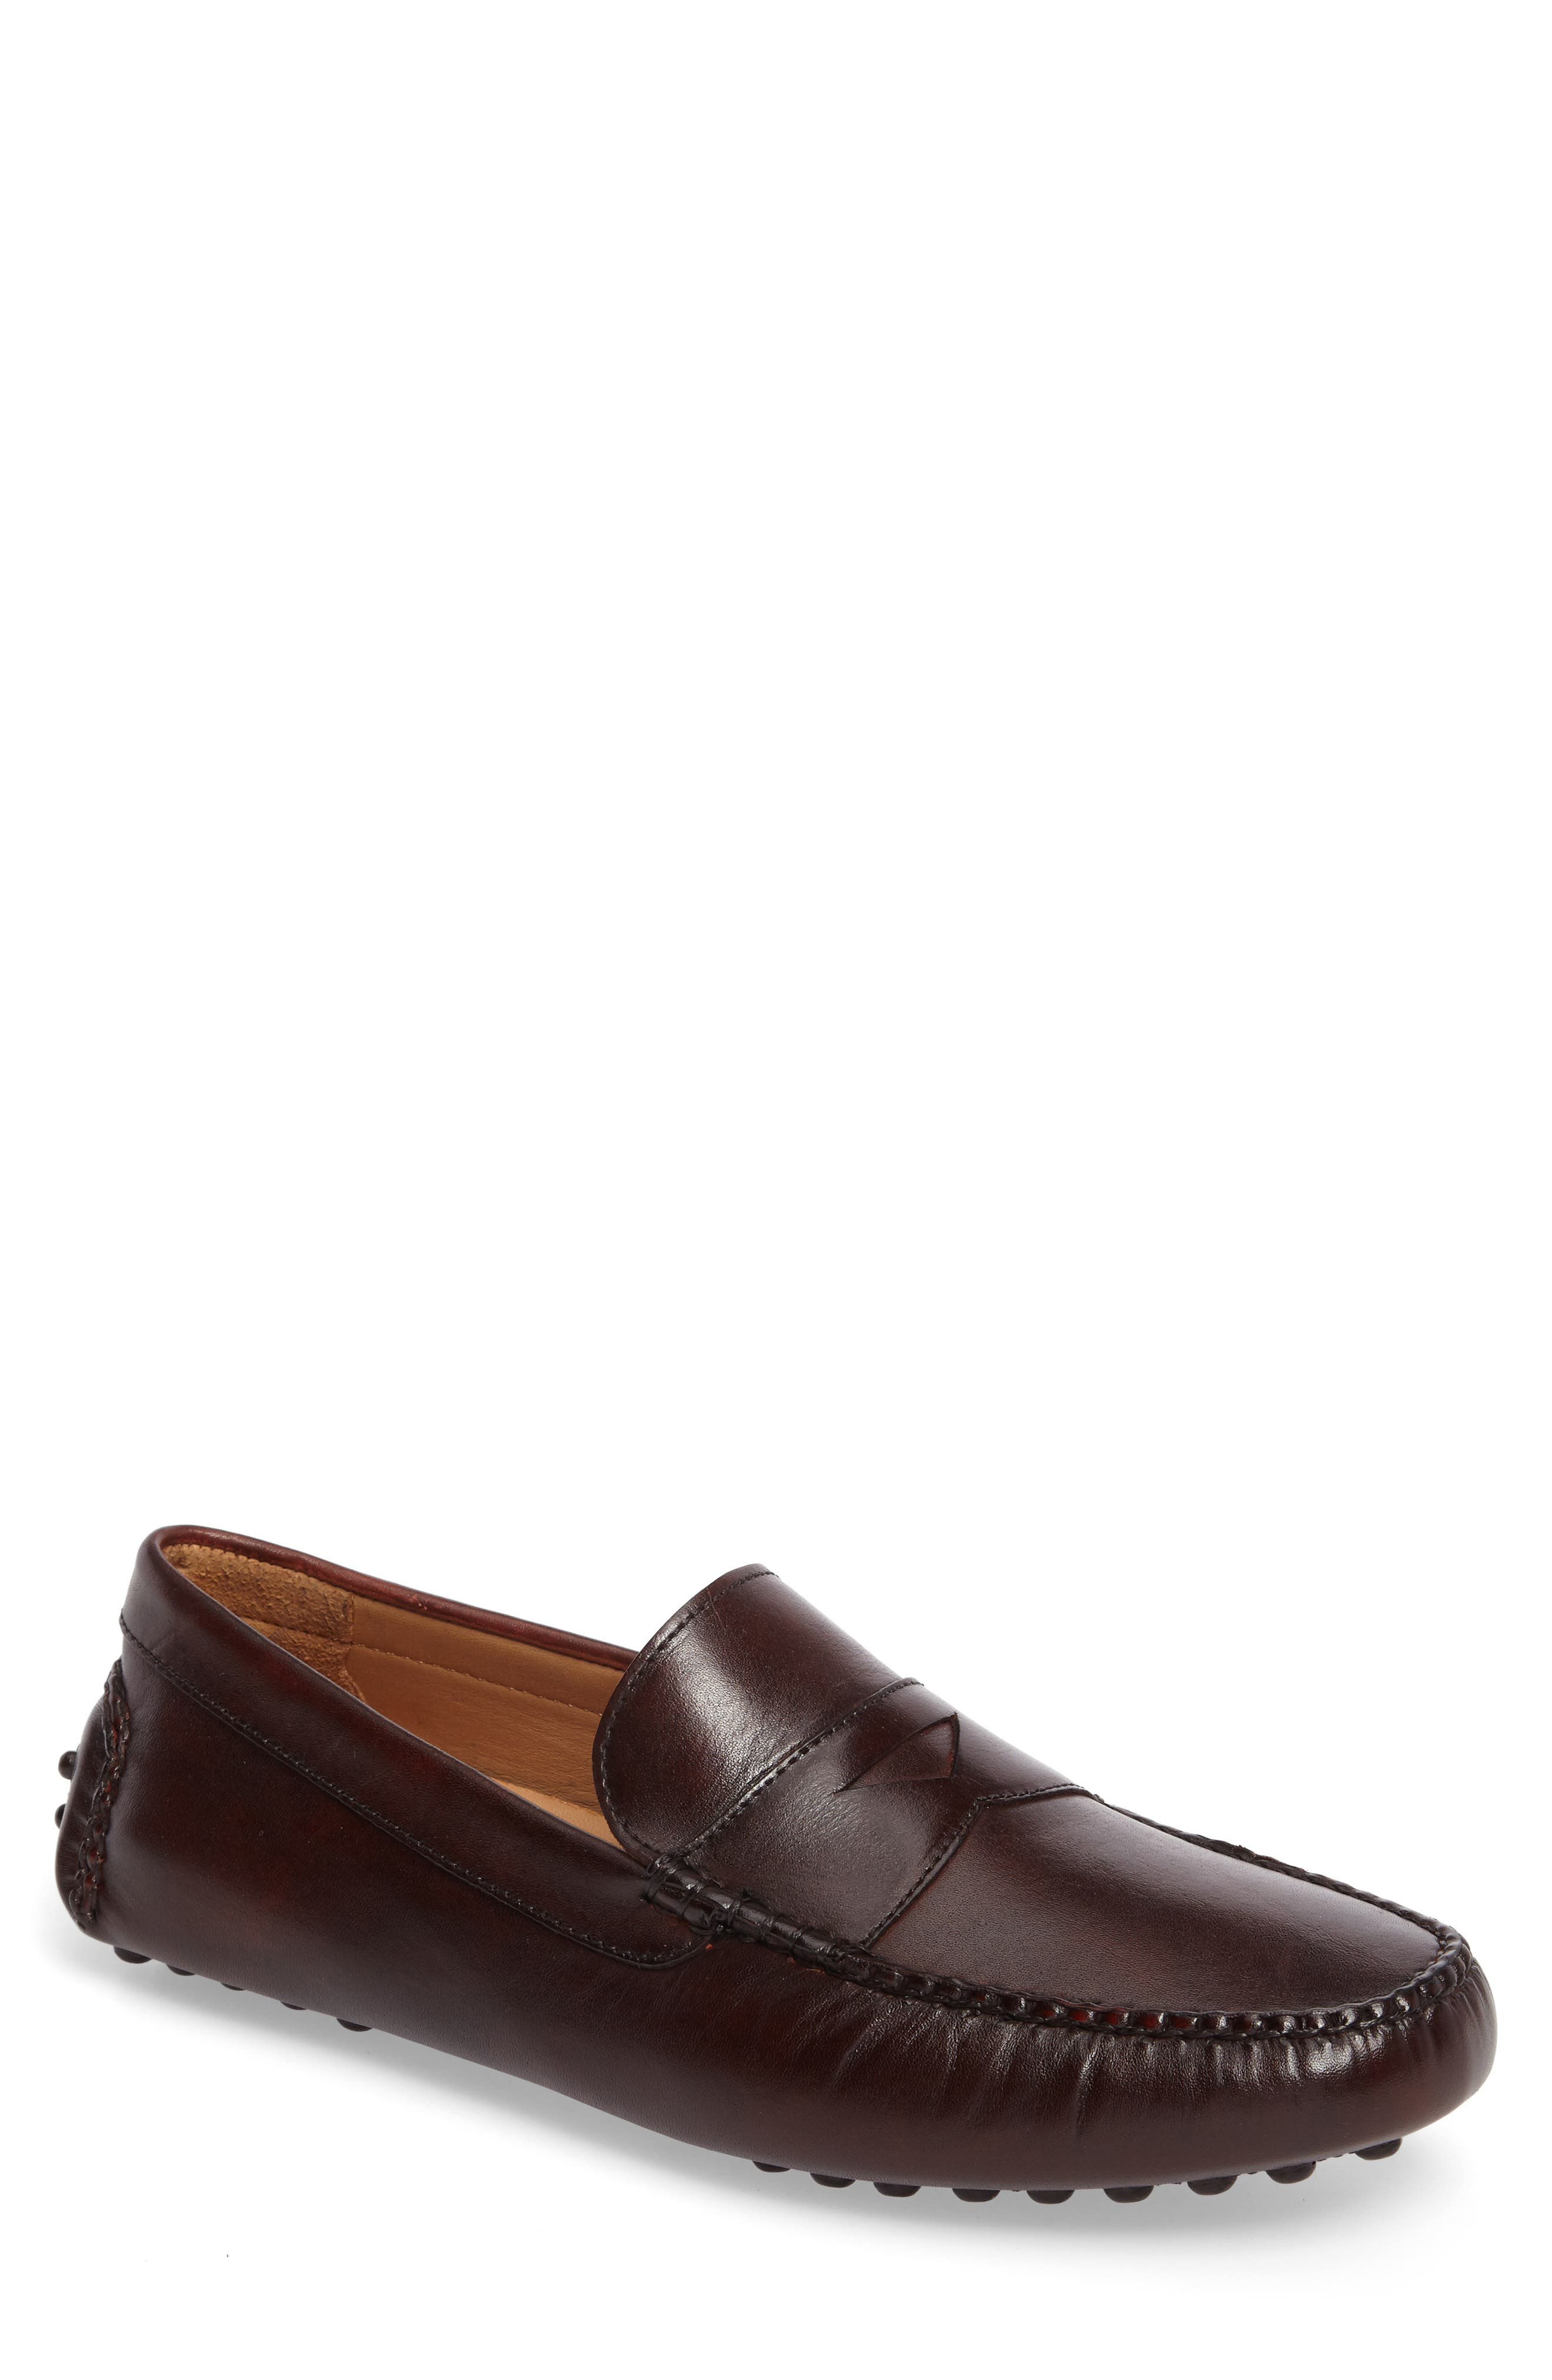 John W. Nordstrom® Eaton Driving Shoe (Men)